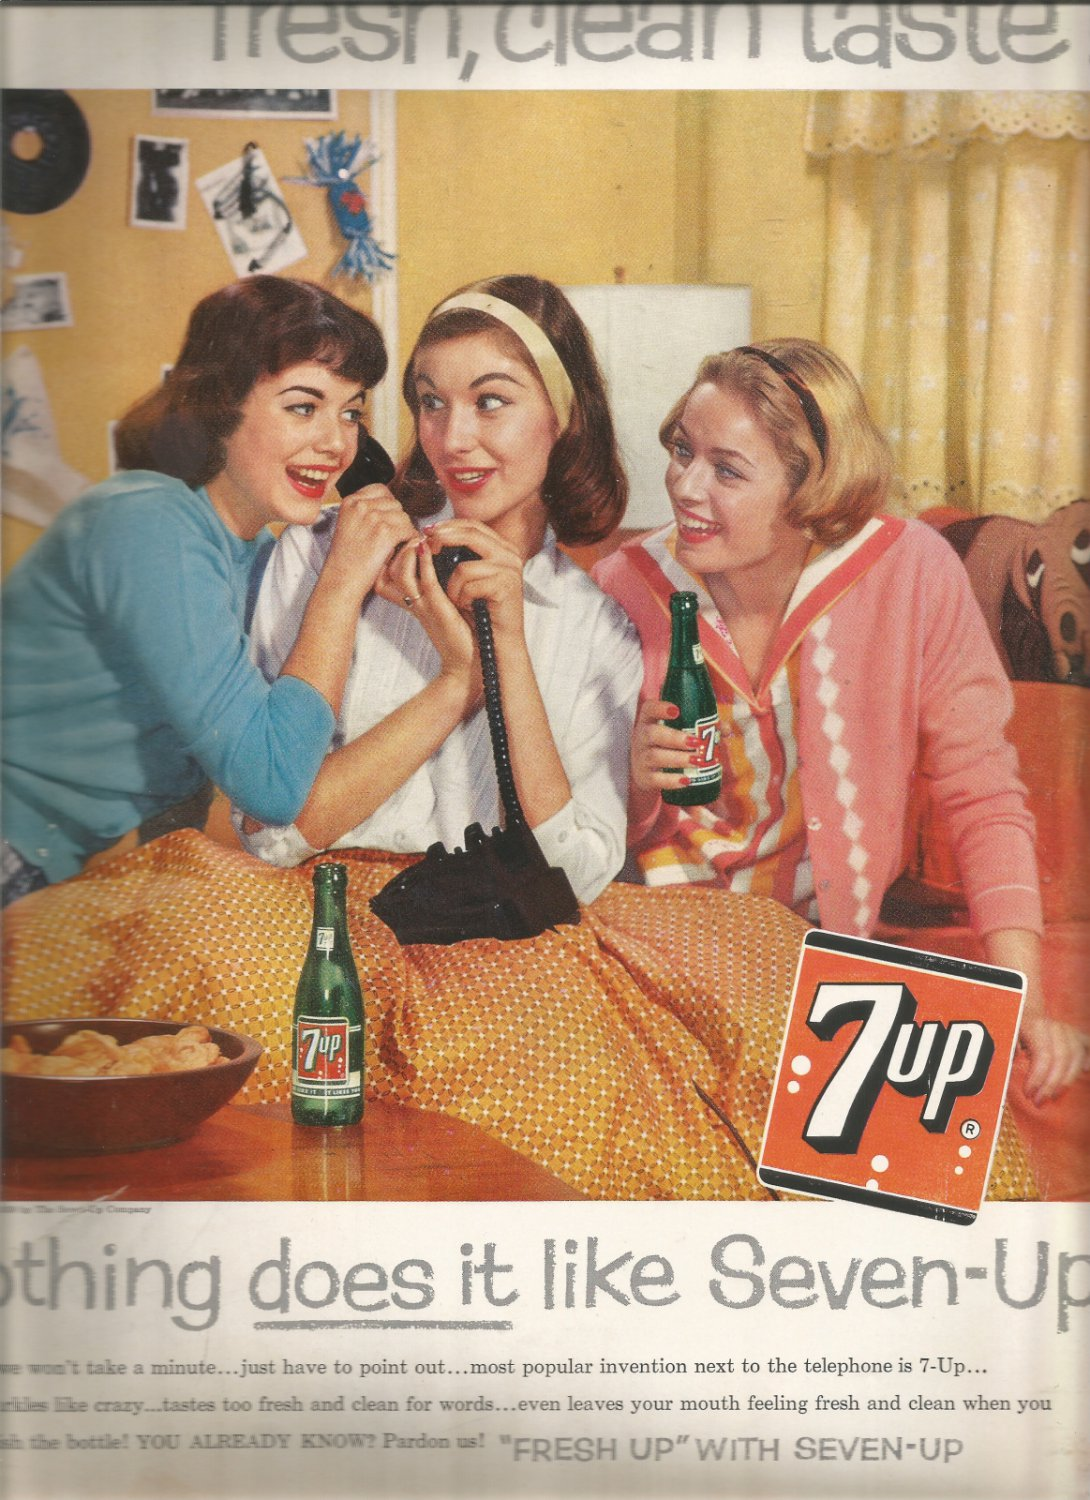 April 28, 1959 Nothing does it like Seven- UP   magazine    ad  (#2210)